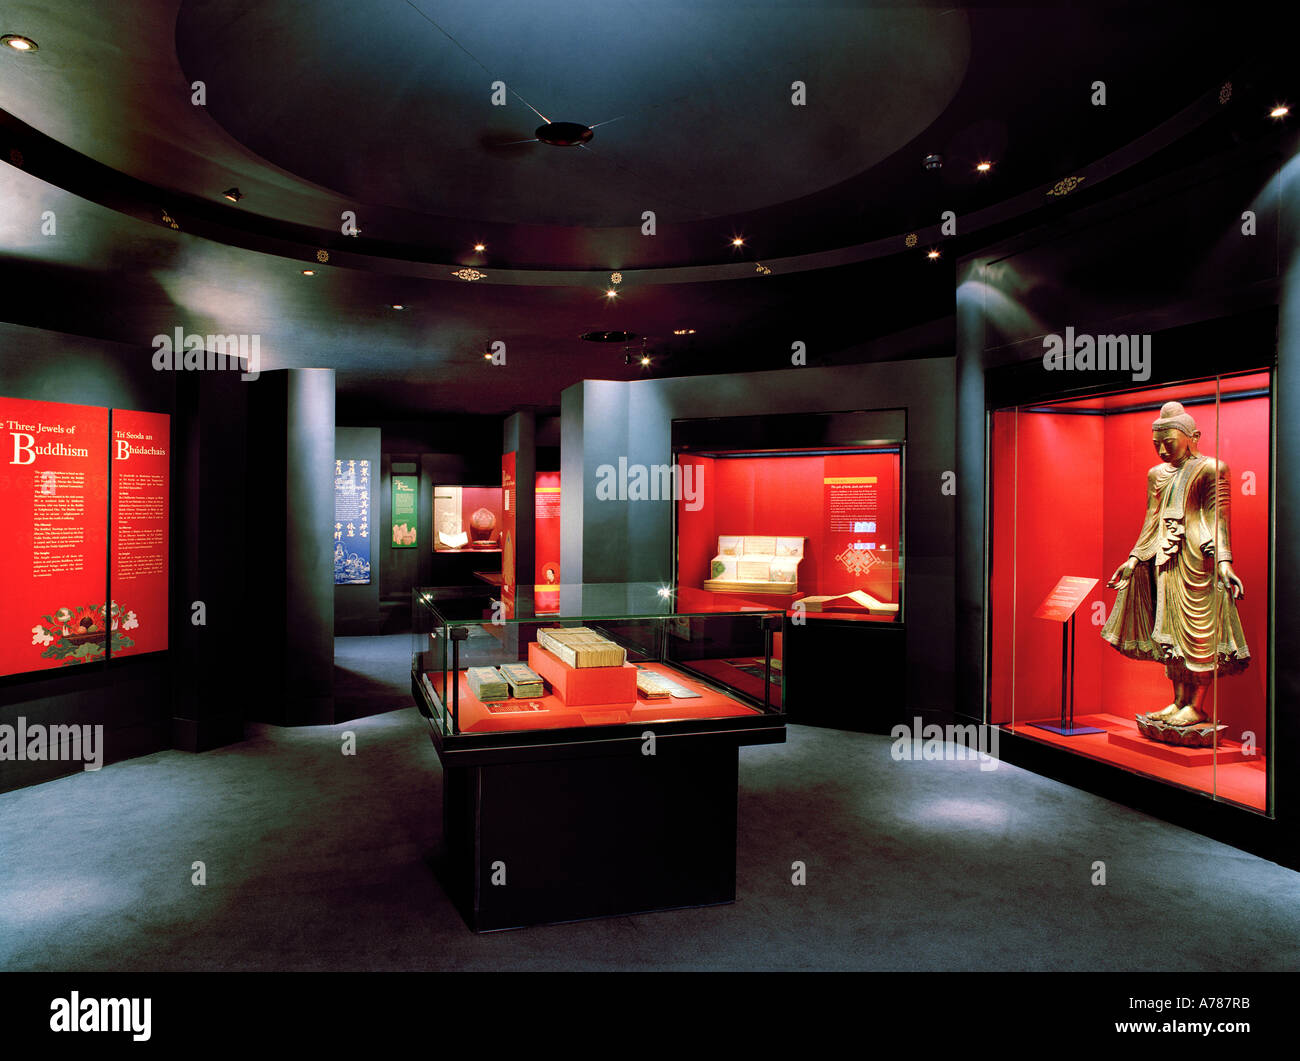 The Eastern Religions section of the main display at the Chester Beatty Library, Dublin, Ireland - Stock Image